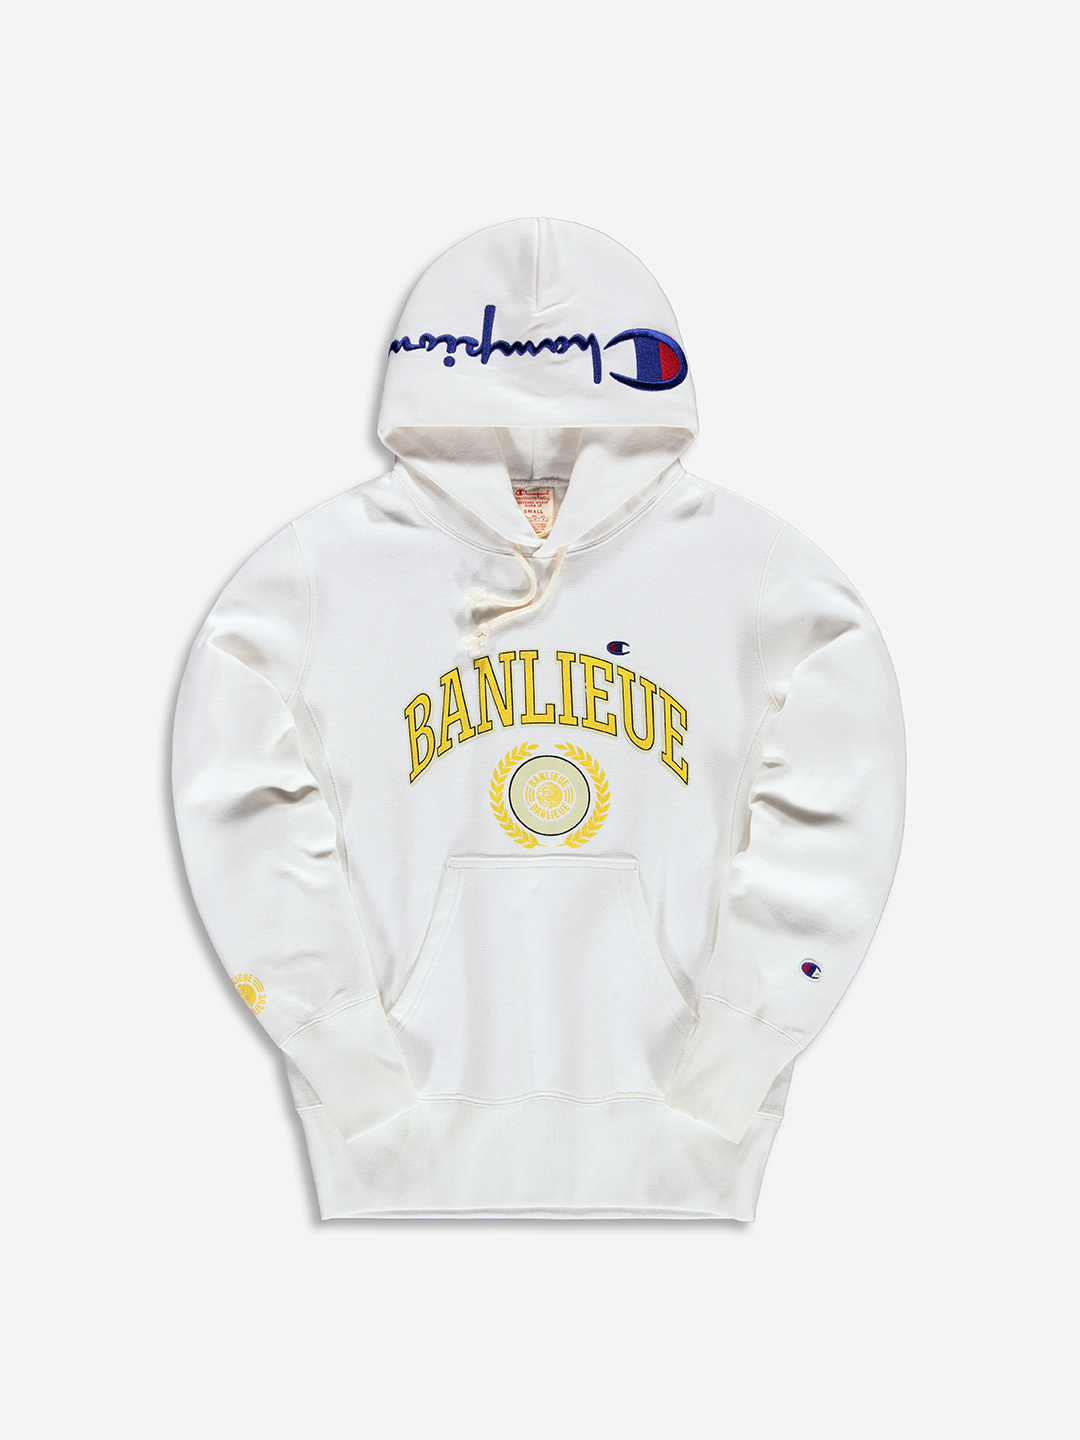 BANLIEUE X CHAMPION HOODIE WHITE